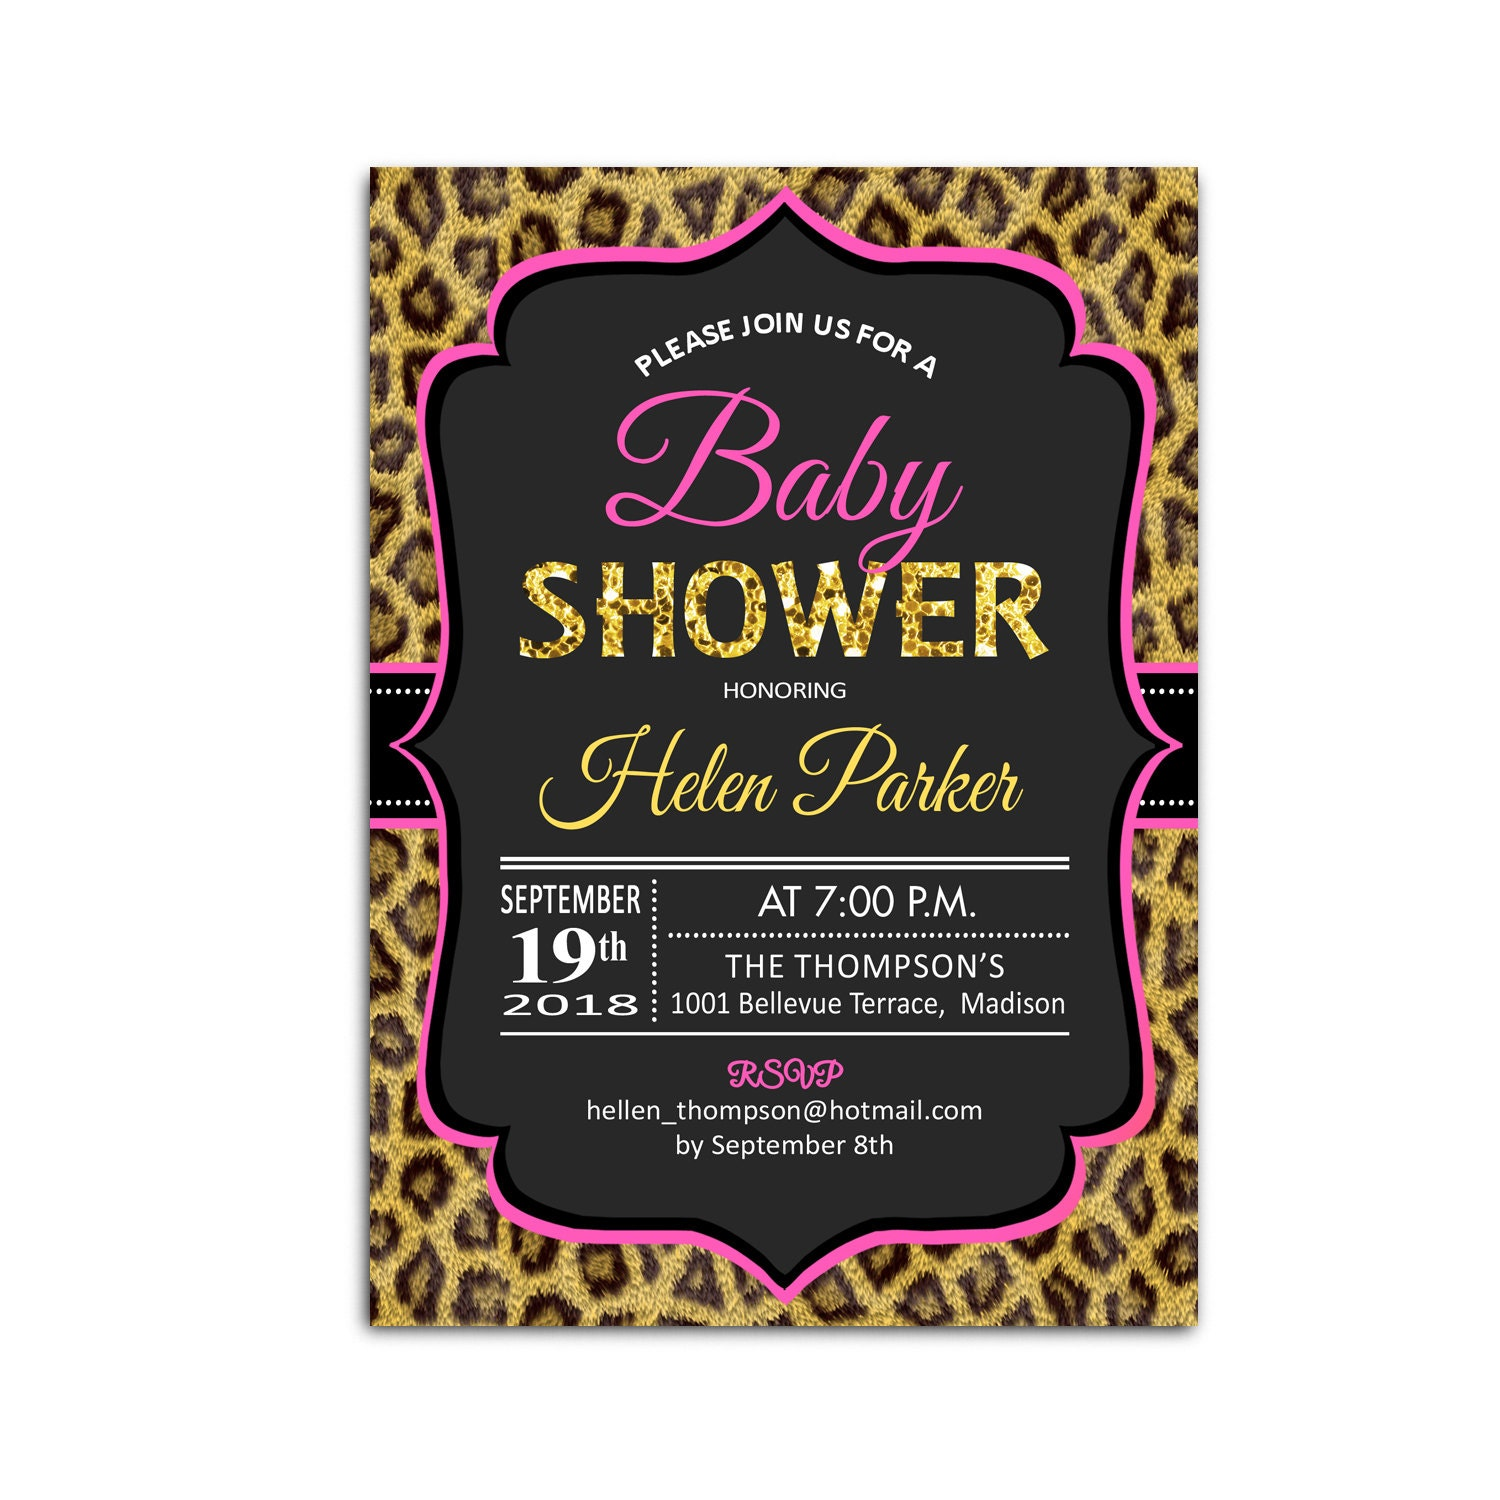 Cheetah Baby Shower Invitation / Leopard Print / Black Glitter Gold ...